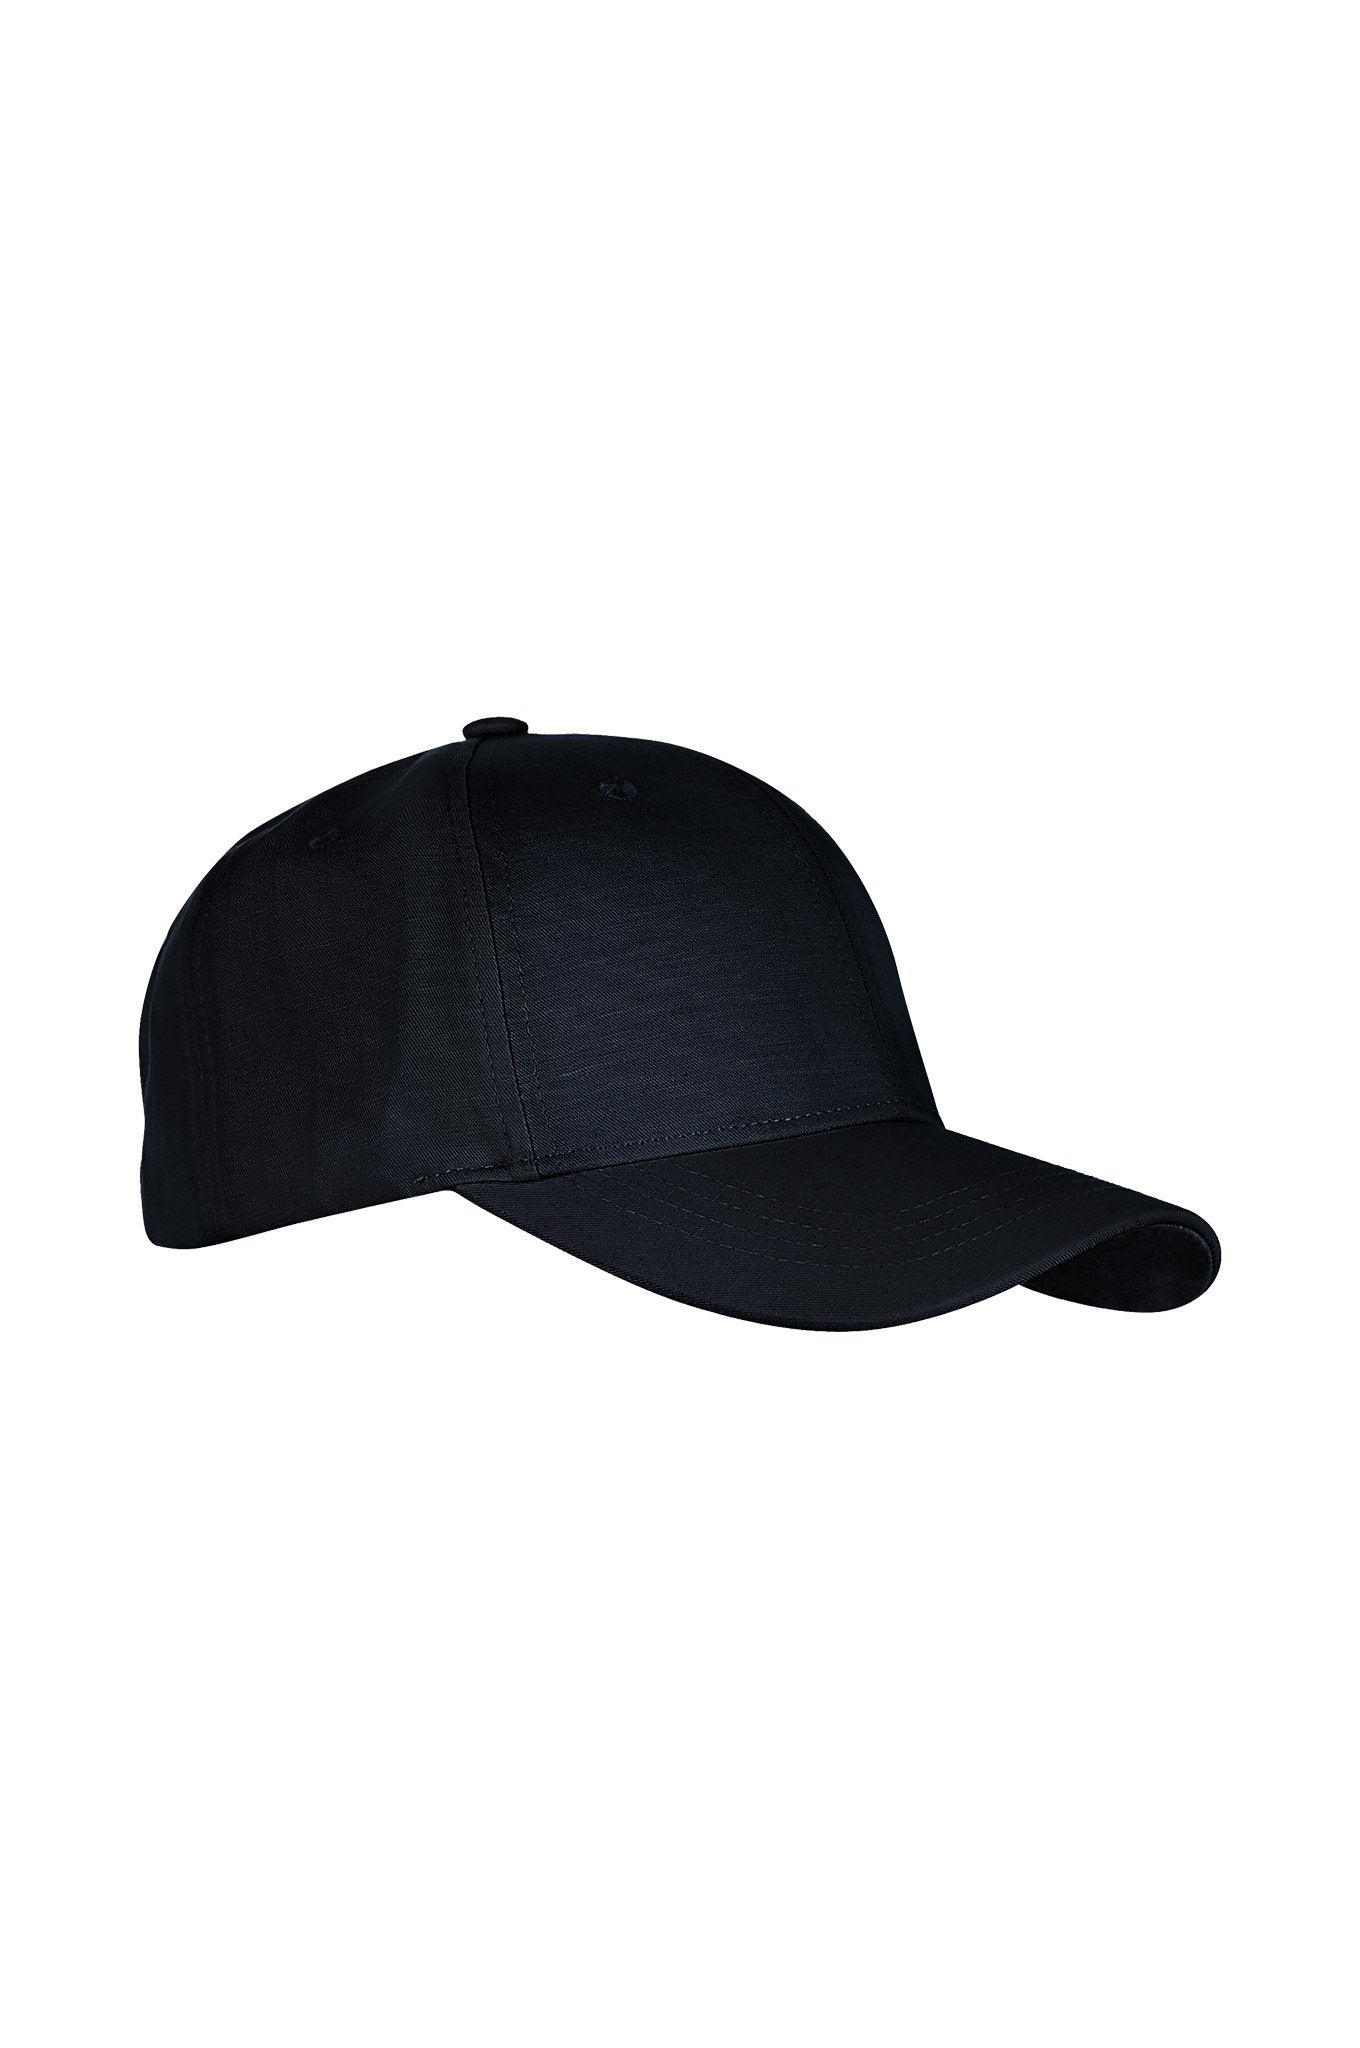 ROCKY Unisex Cap Coal - Komodo Fashion